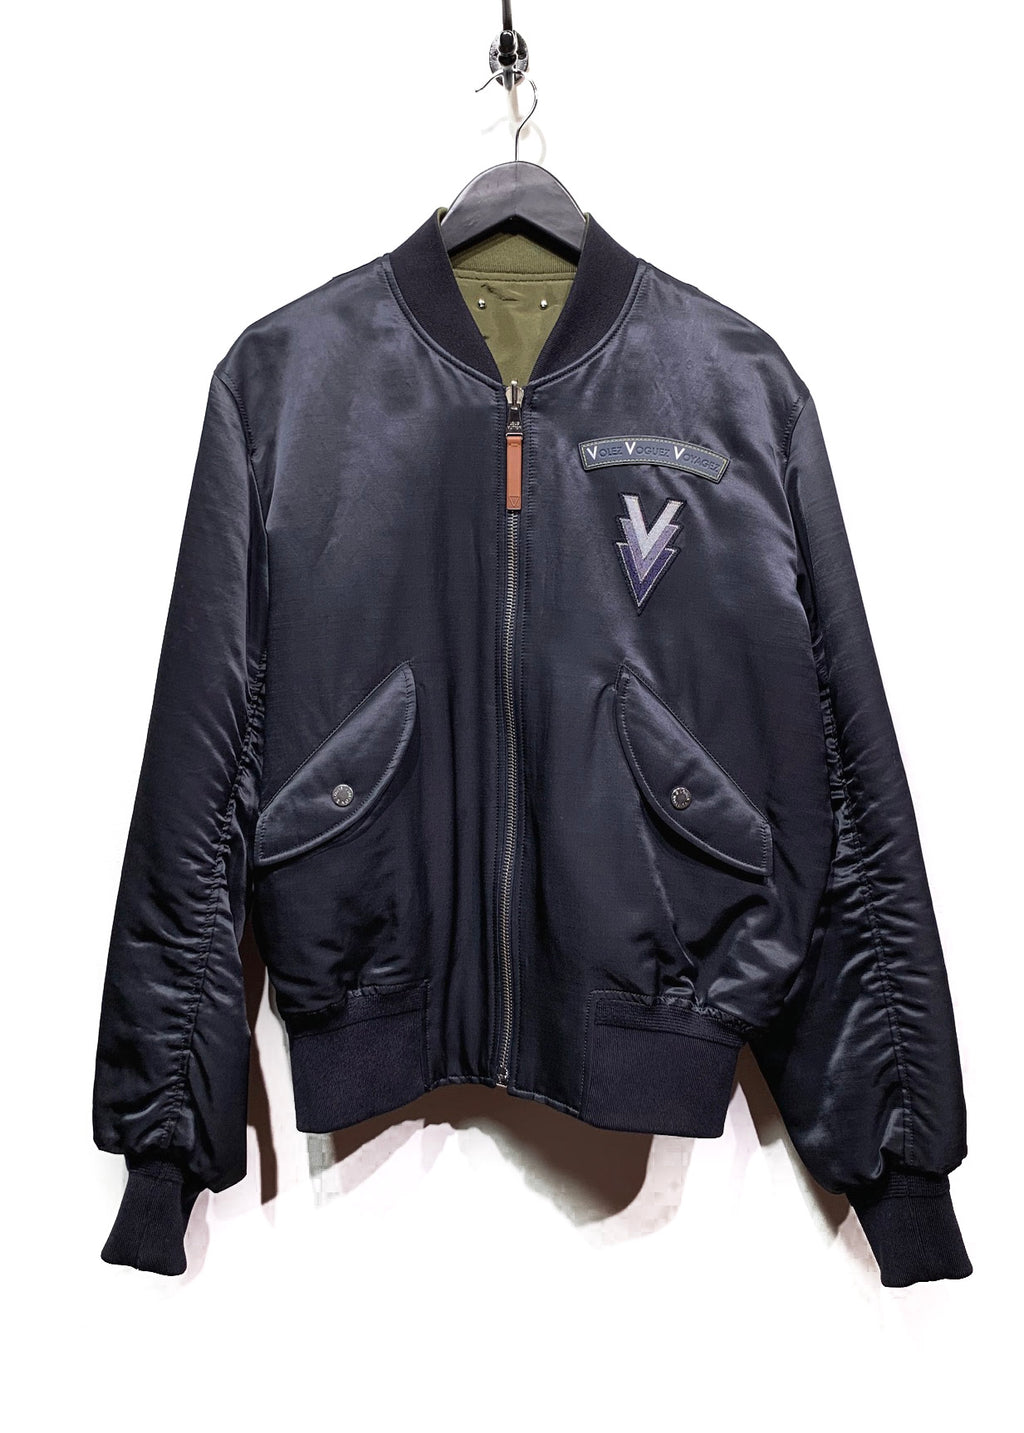 Louis Vuitton Navy Satin MB-1 ''Volez Voguez Voyagez'' Reversible Bomber Jacket